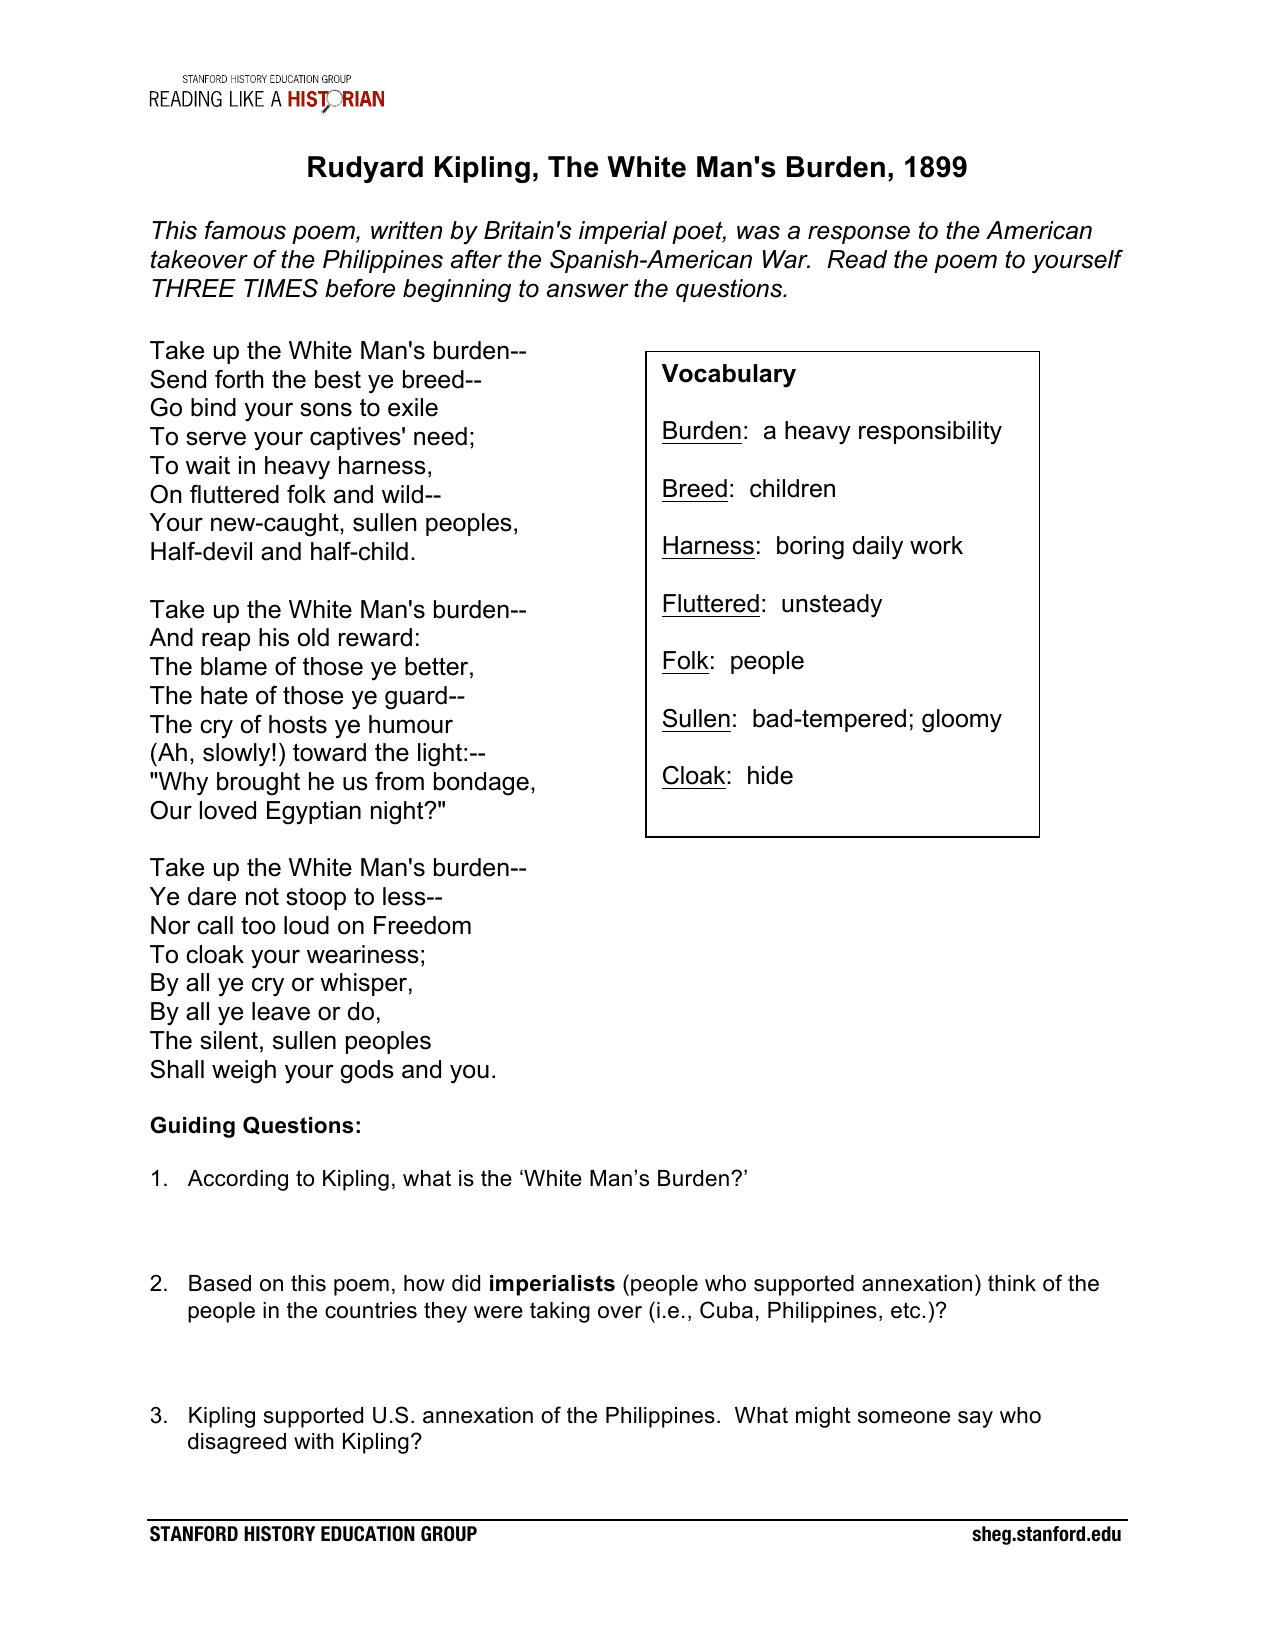 Cartoonysis Worksheet Answers Key